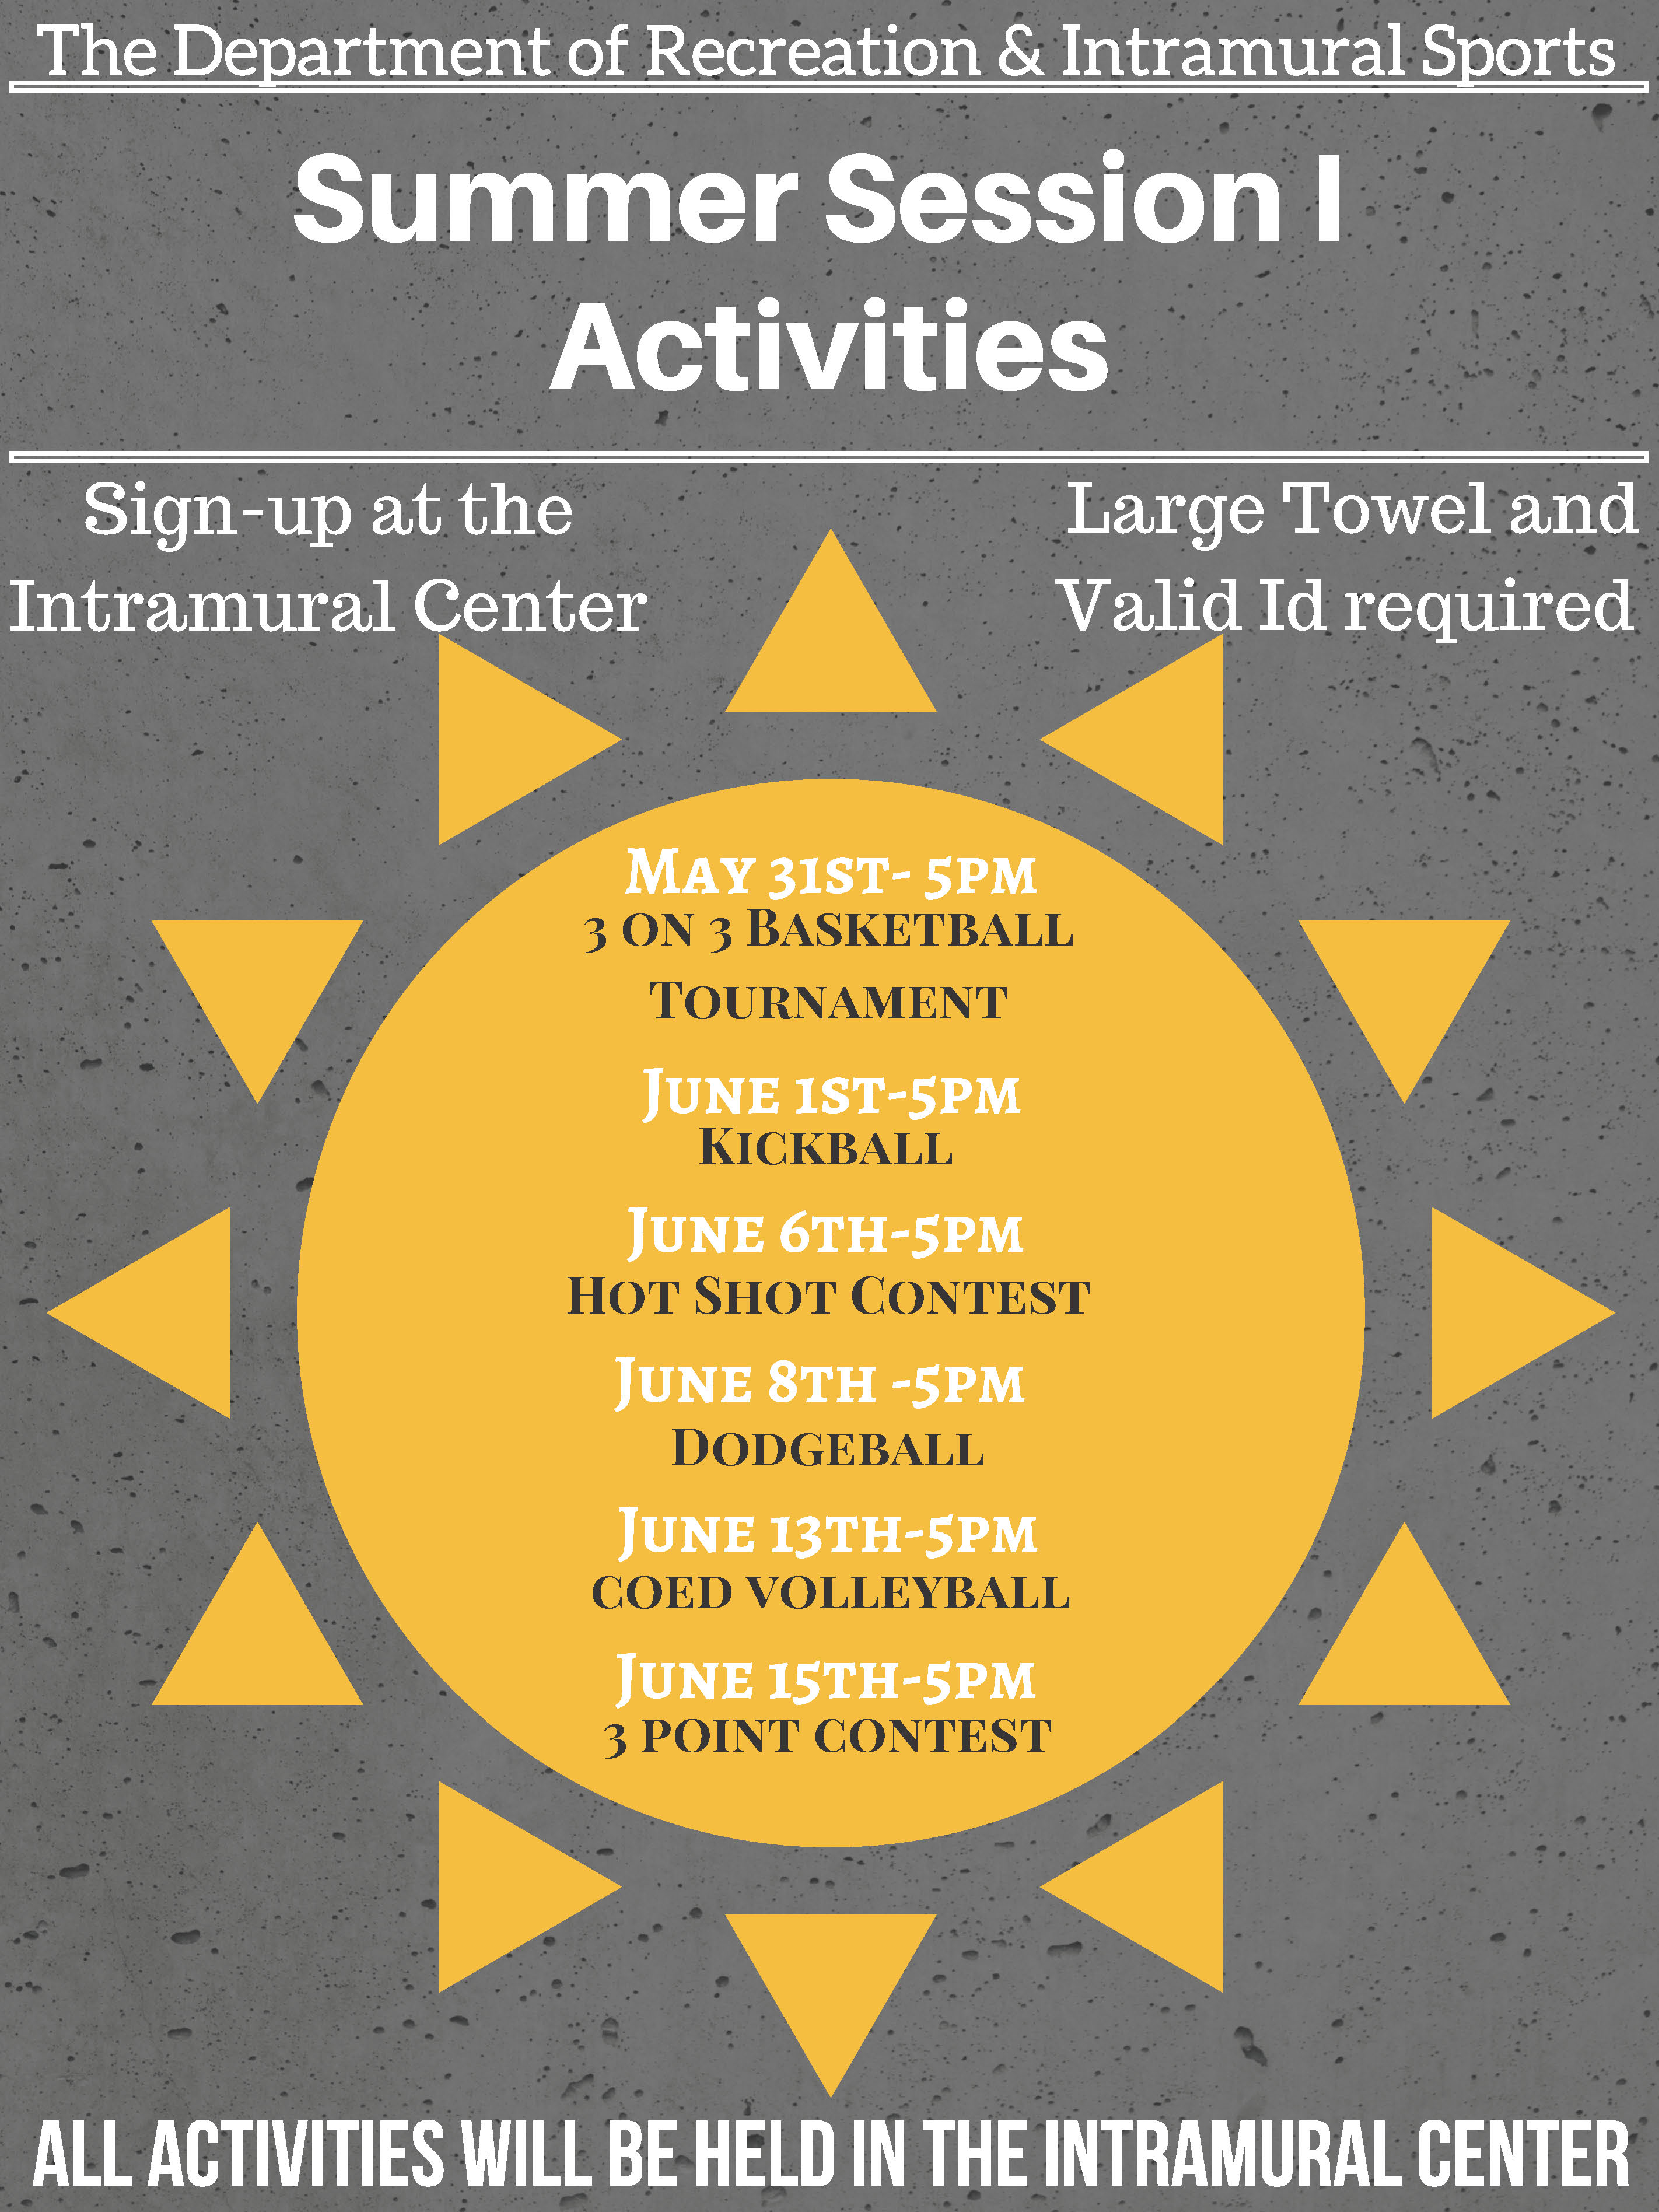 Intramural Center Summer 2017 Session 1 Activities